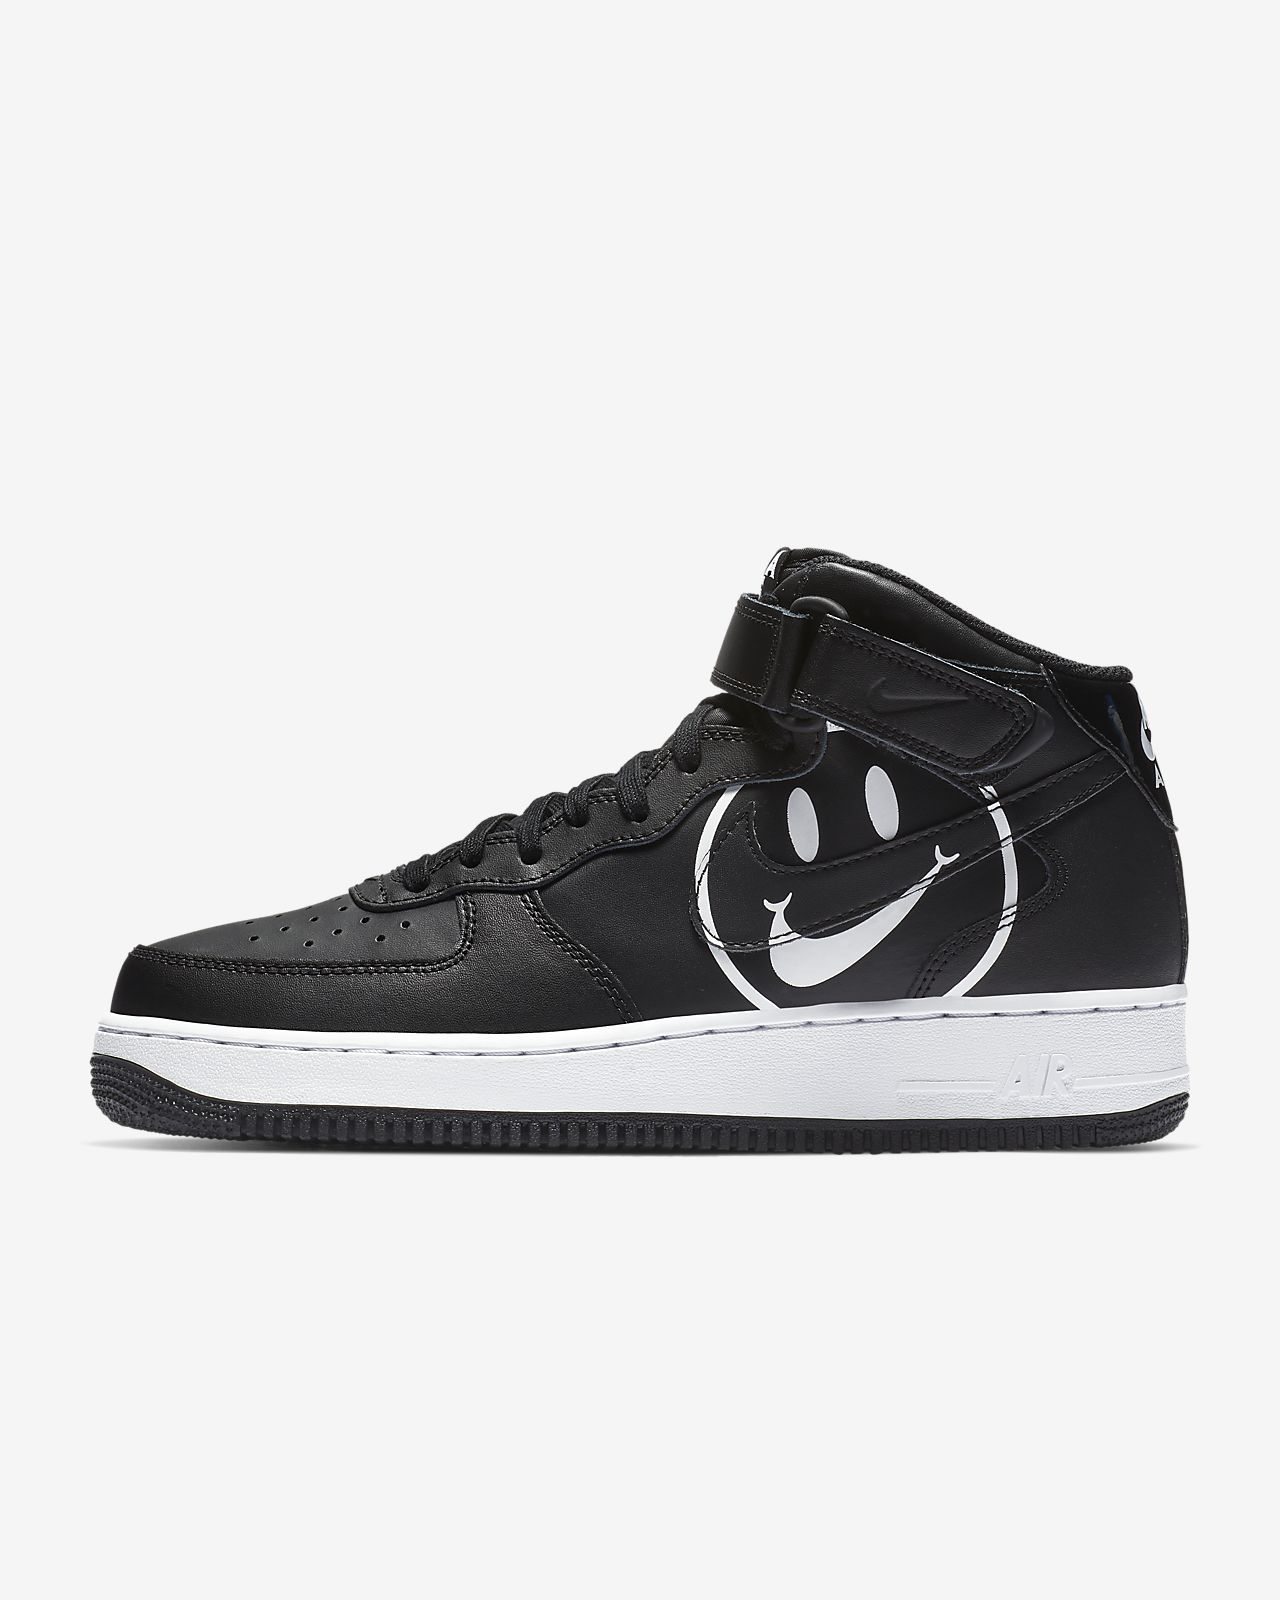 Nike Air Force 1 Mid '07 LV8 2 男子运动鞋